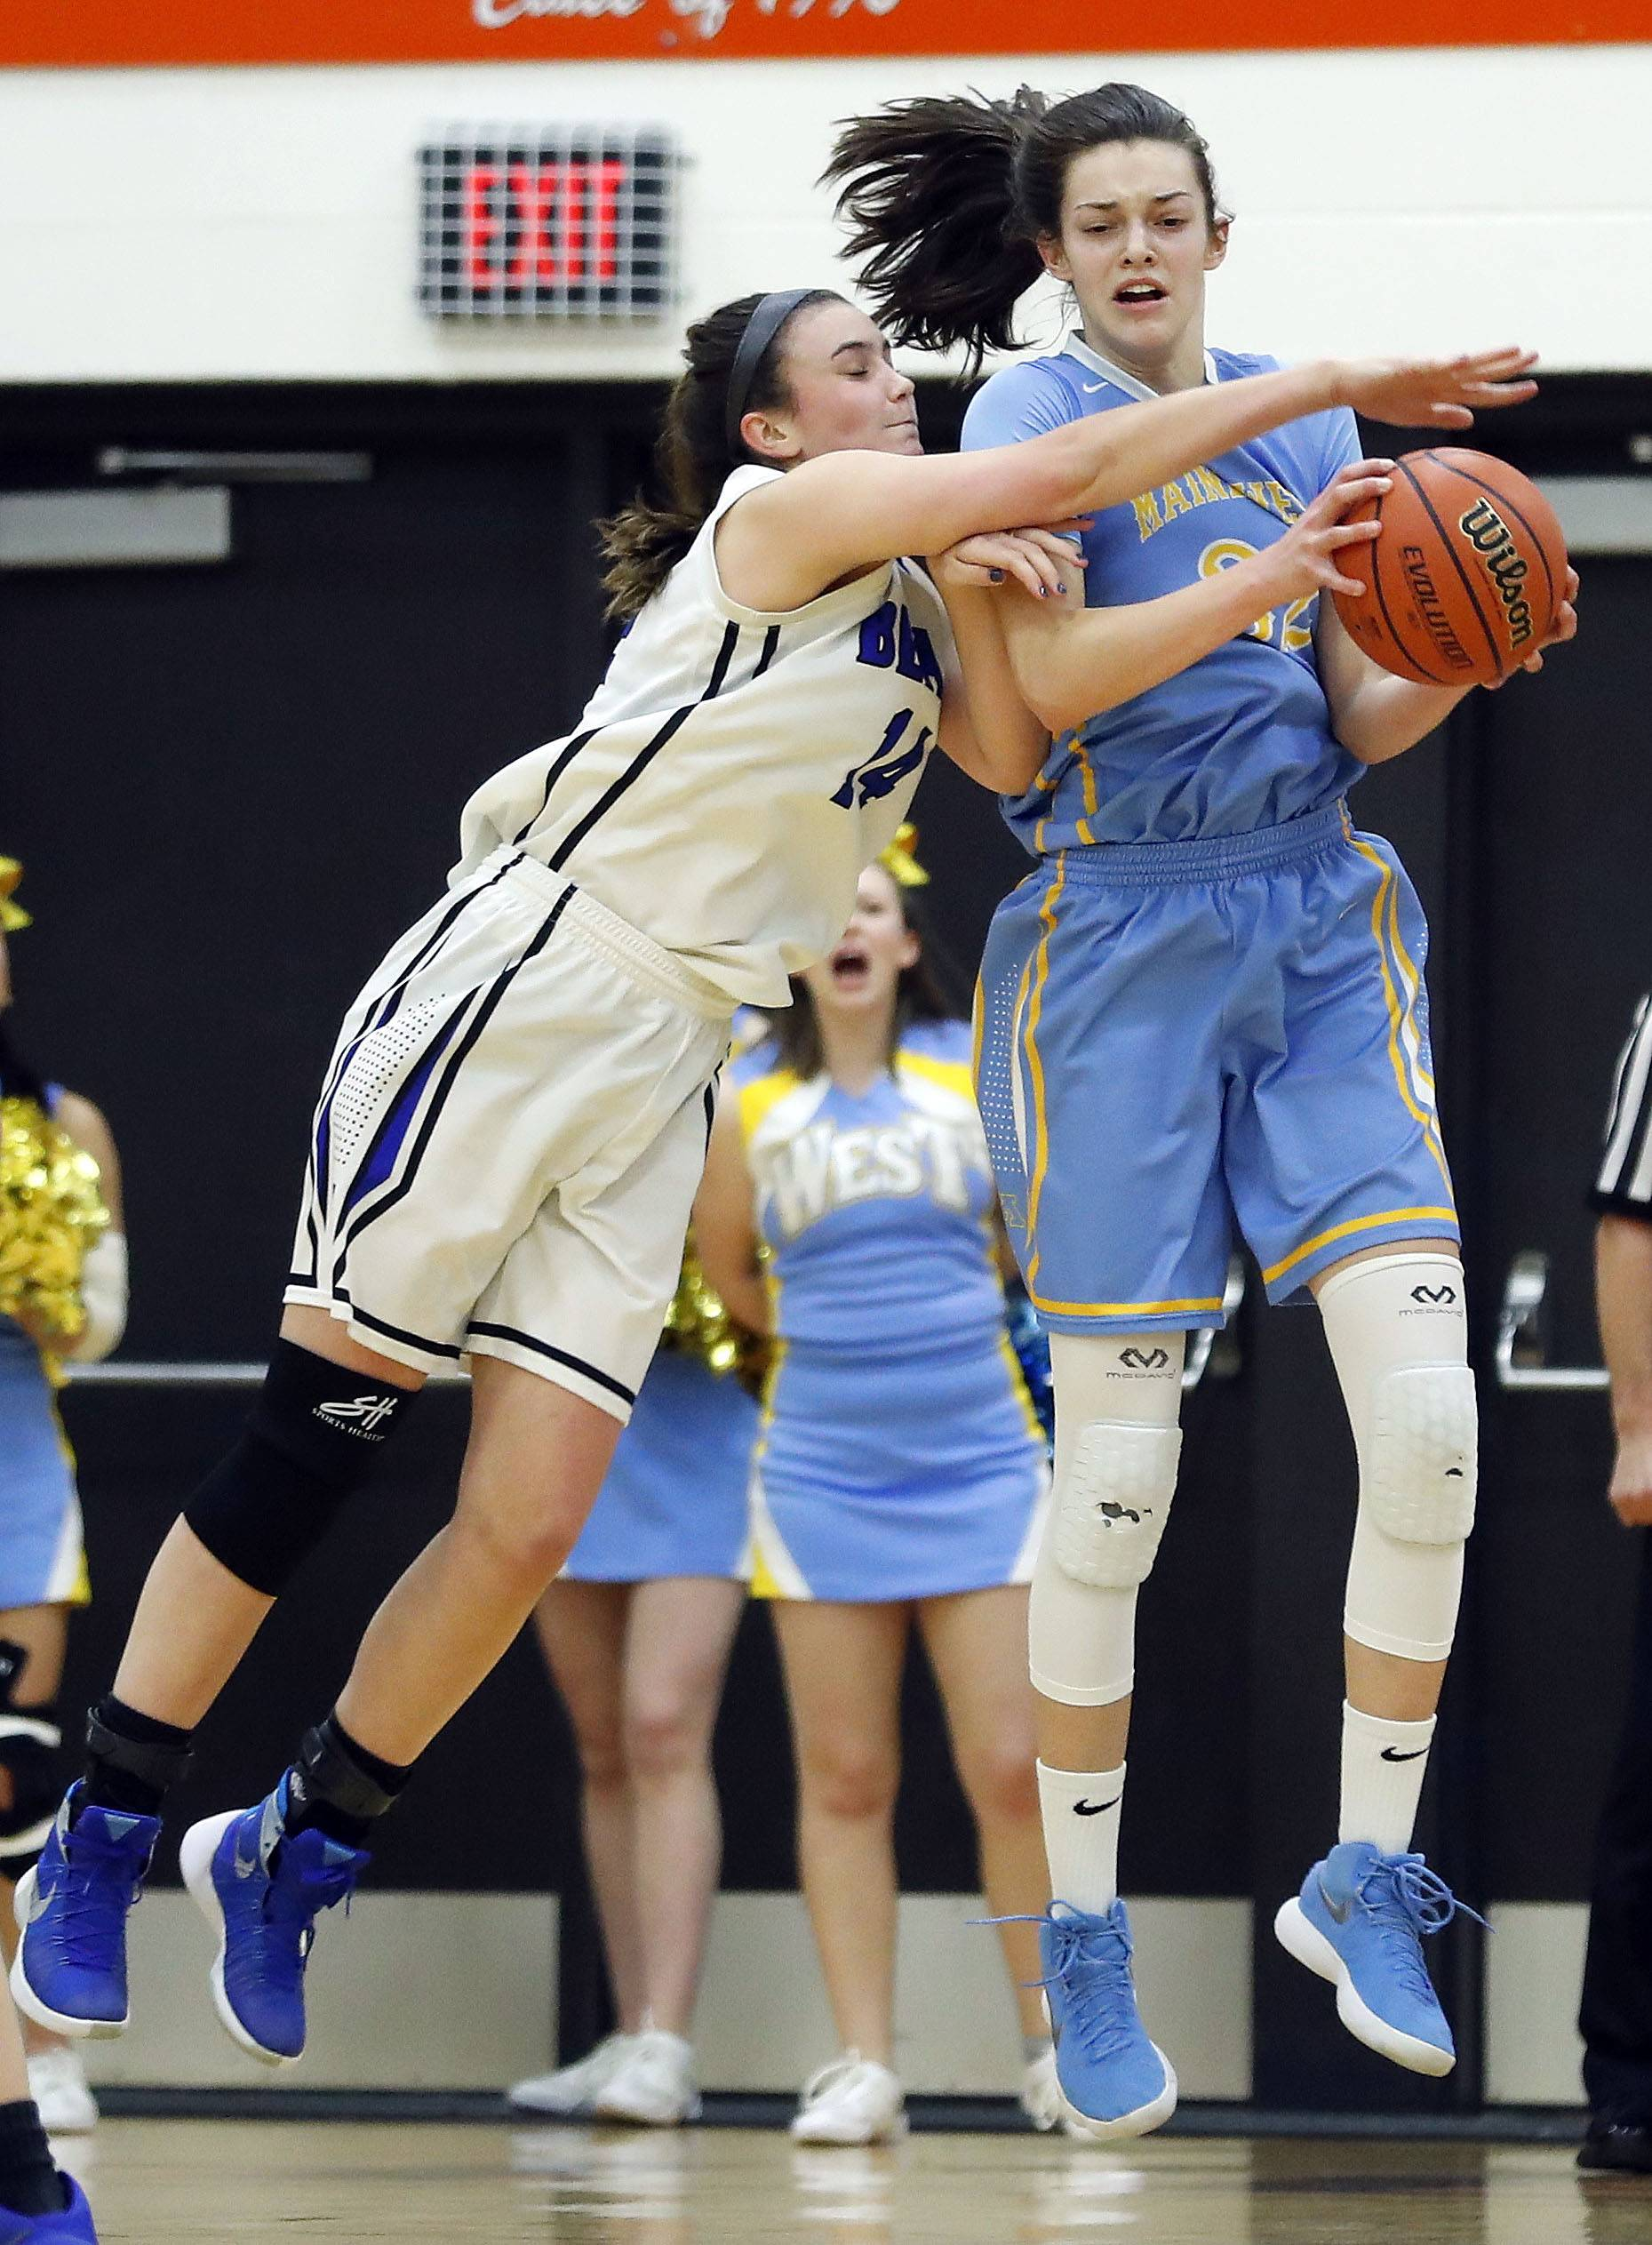 Maine West's Angela Dugalic, right, and Lake Zurich's McKenna Zobel battle for a rebound during the Class 4A Hersey supersectional in Arlington Heights on Monday.